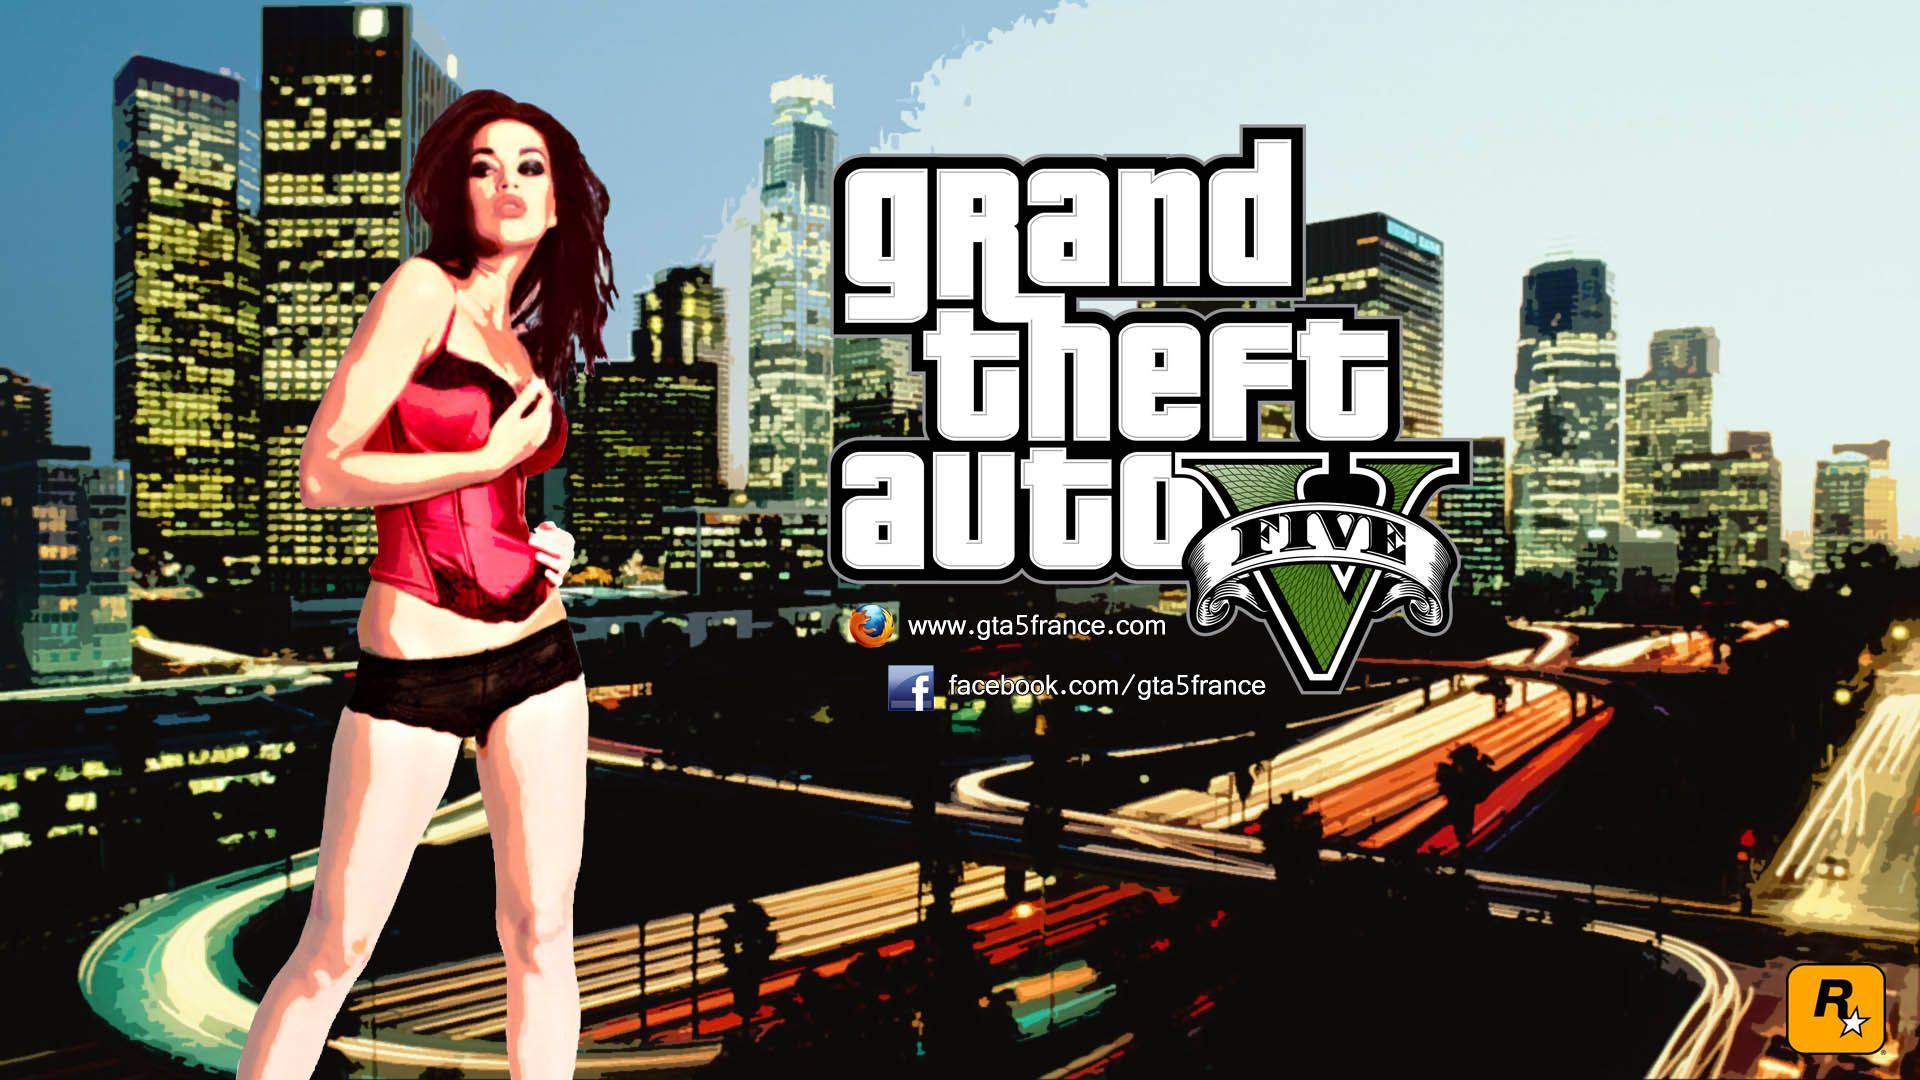 GTA 5 HD Wallpapers Images Wallpapers Pinterest Gta and